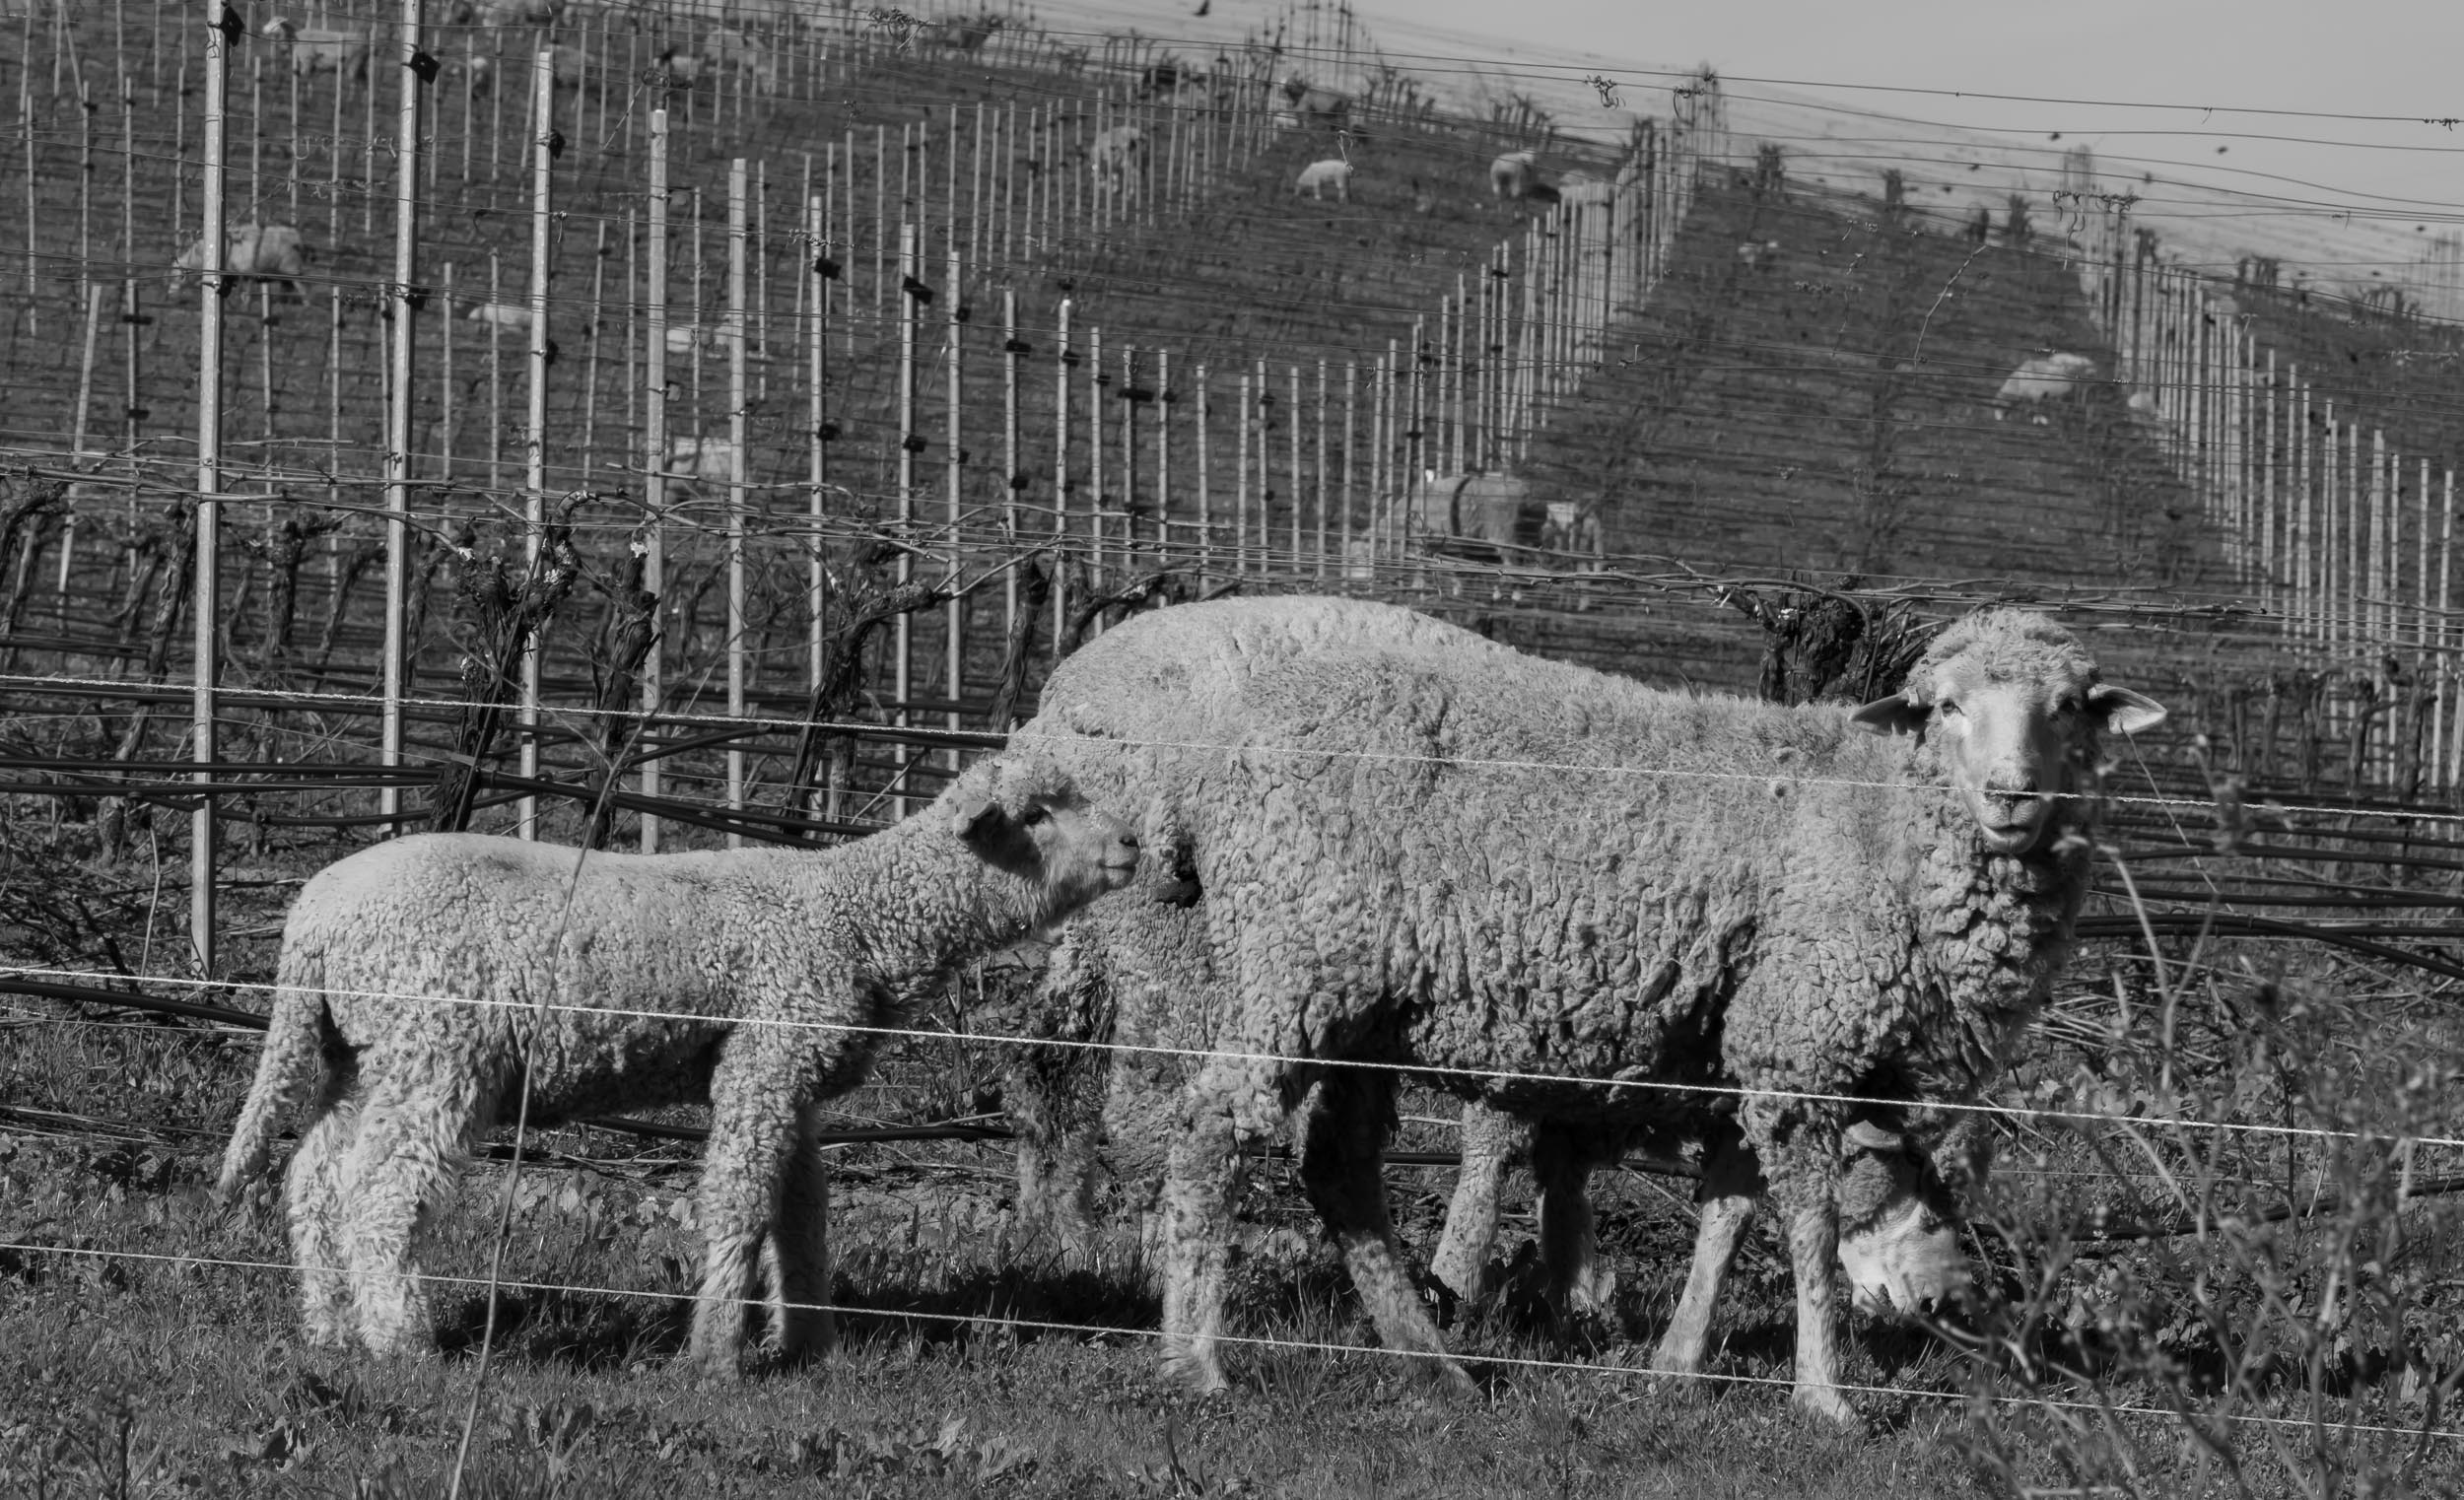 sheep_vineyard_202002-61